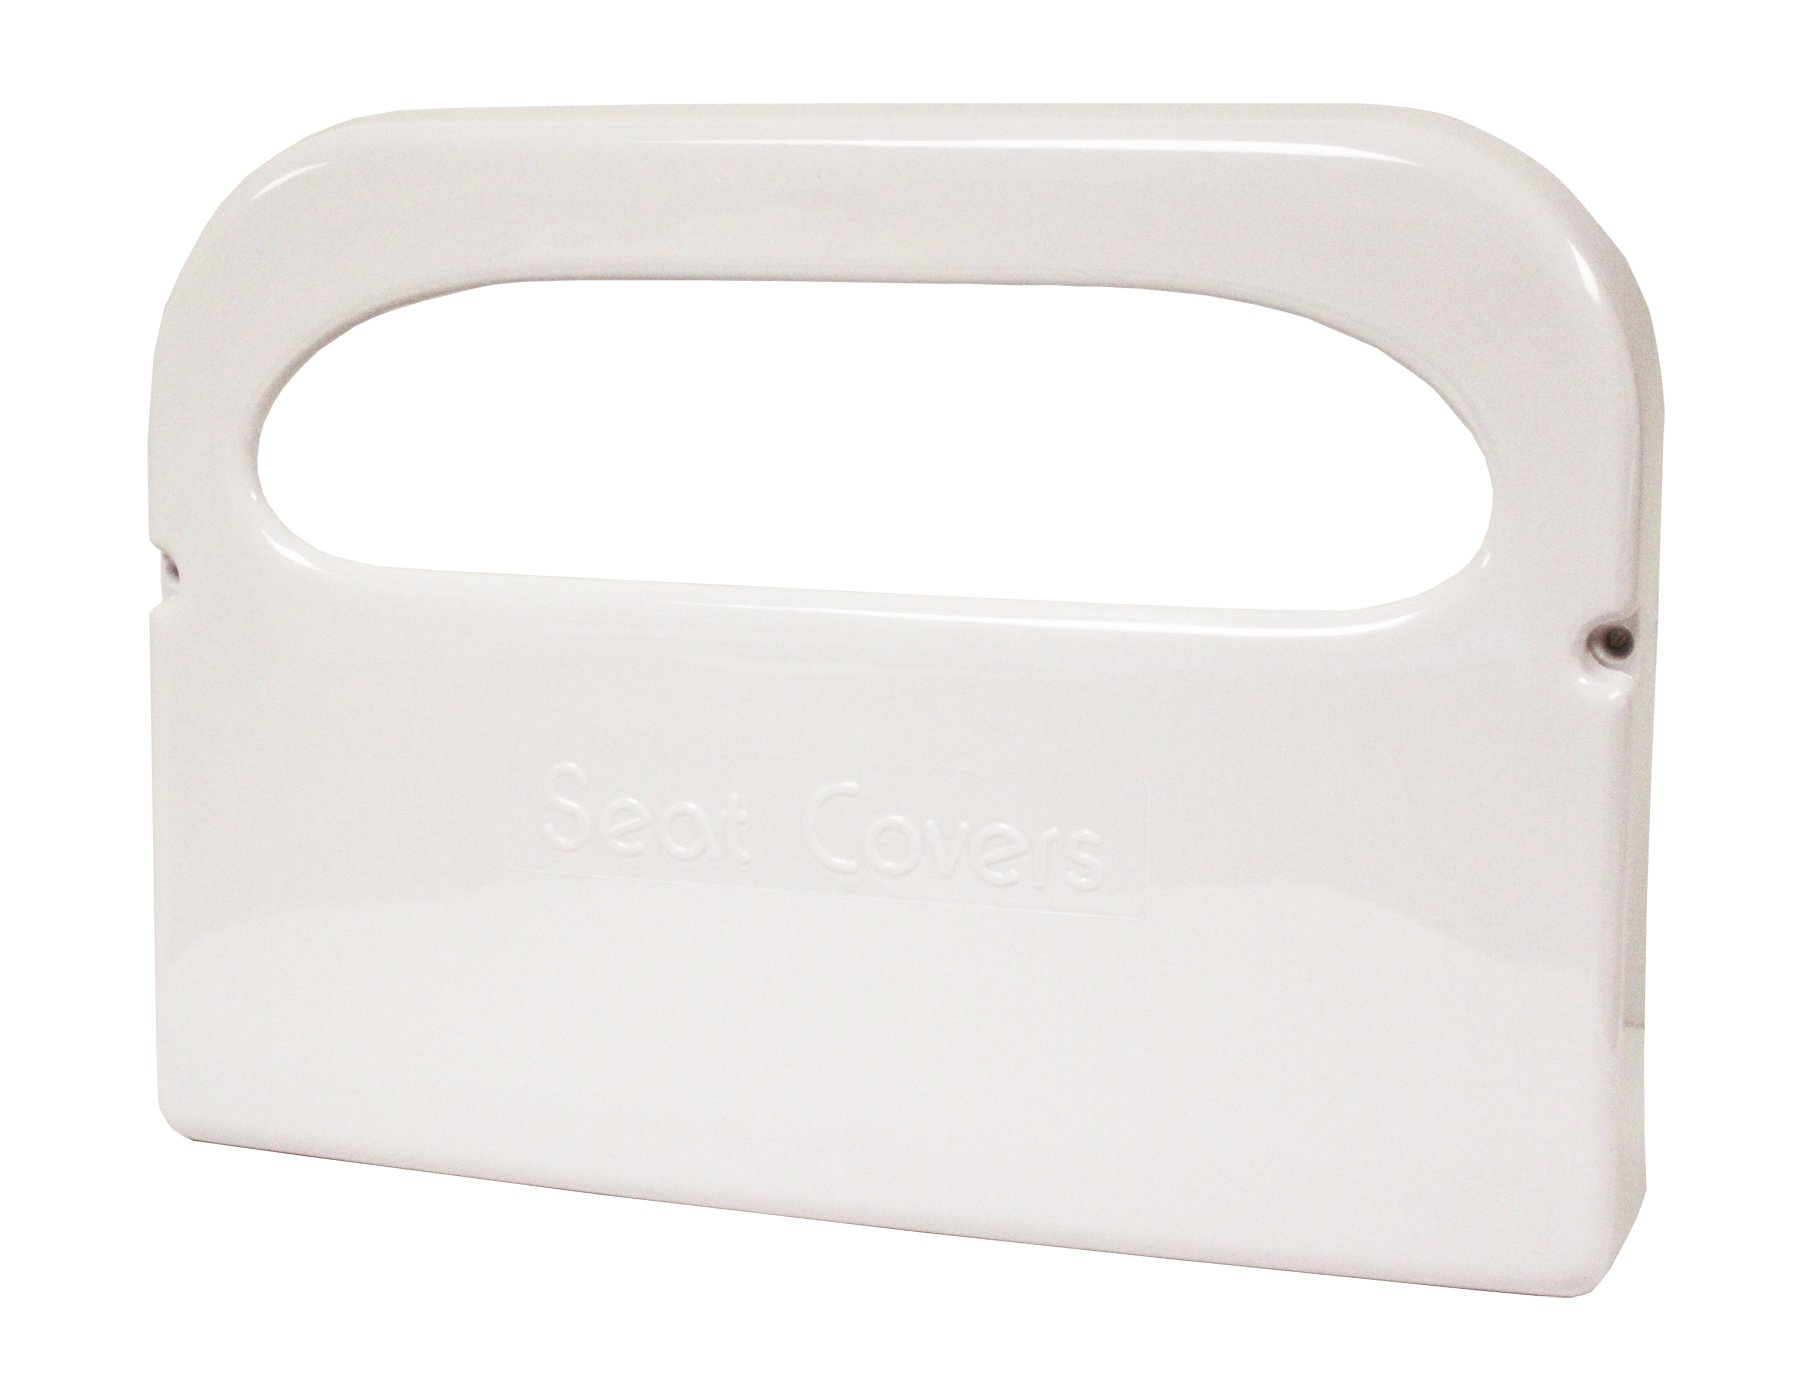 Palmer Fixture TS0142-03 1/2'' Fold Toilet Seat Cover Dispenser, White Translucent (Pack of 20)